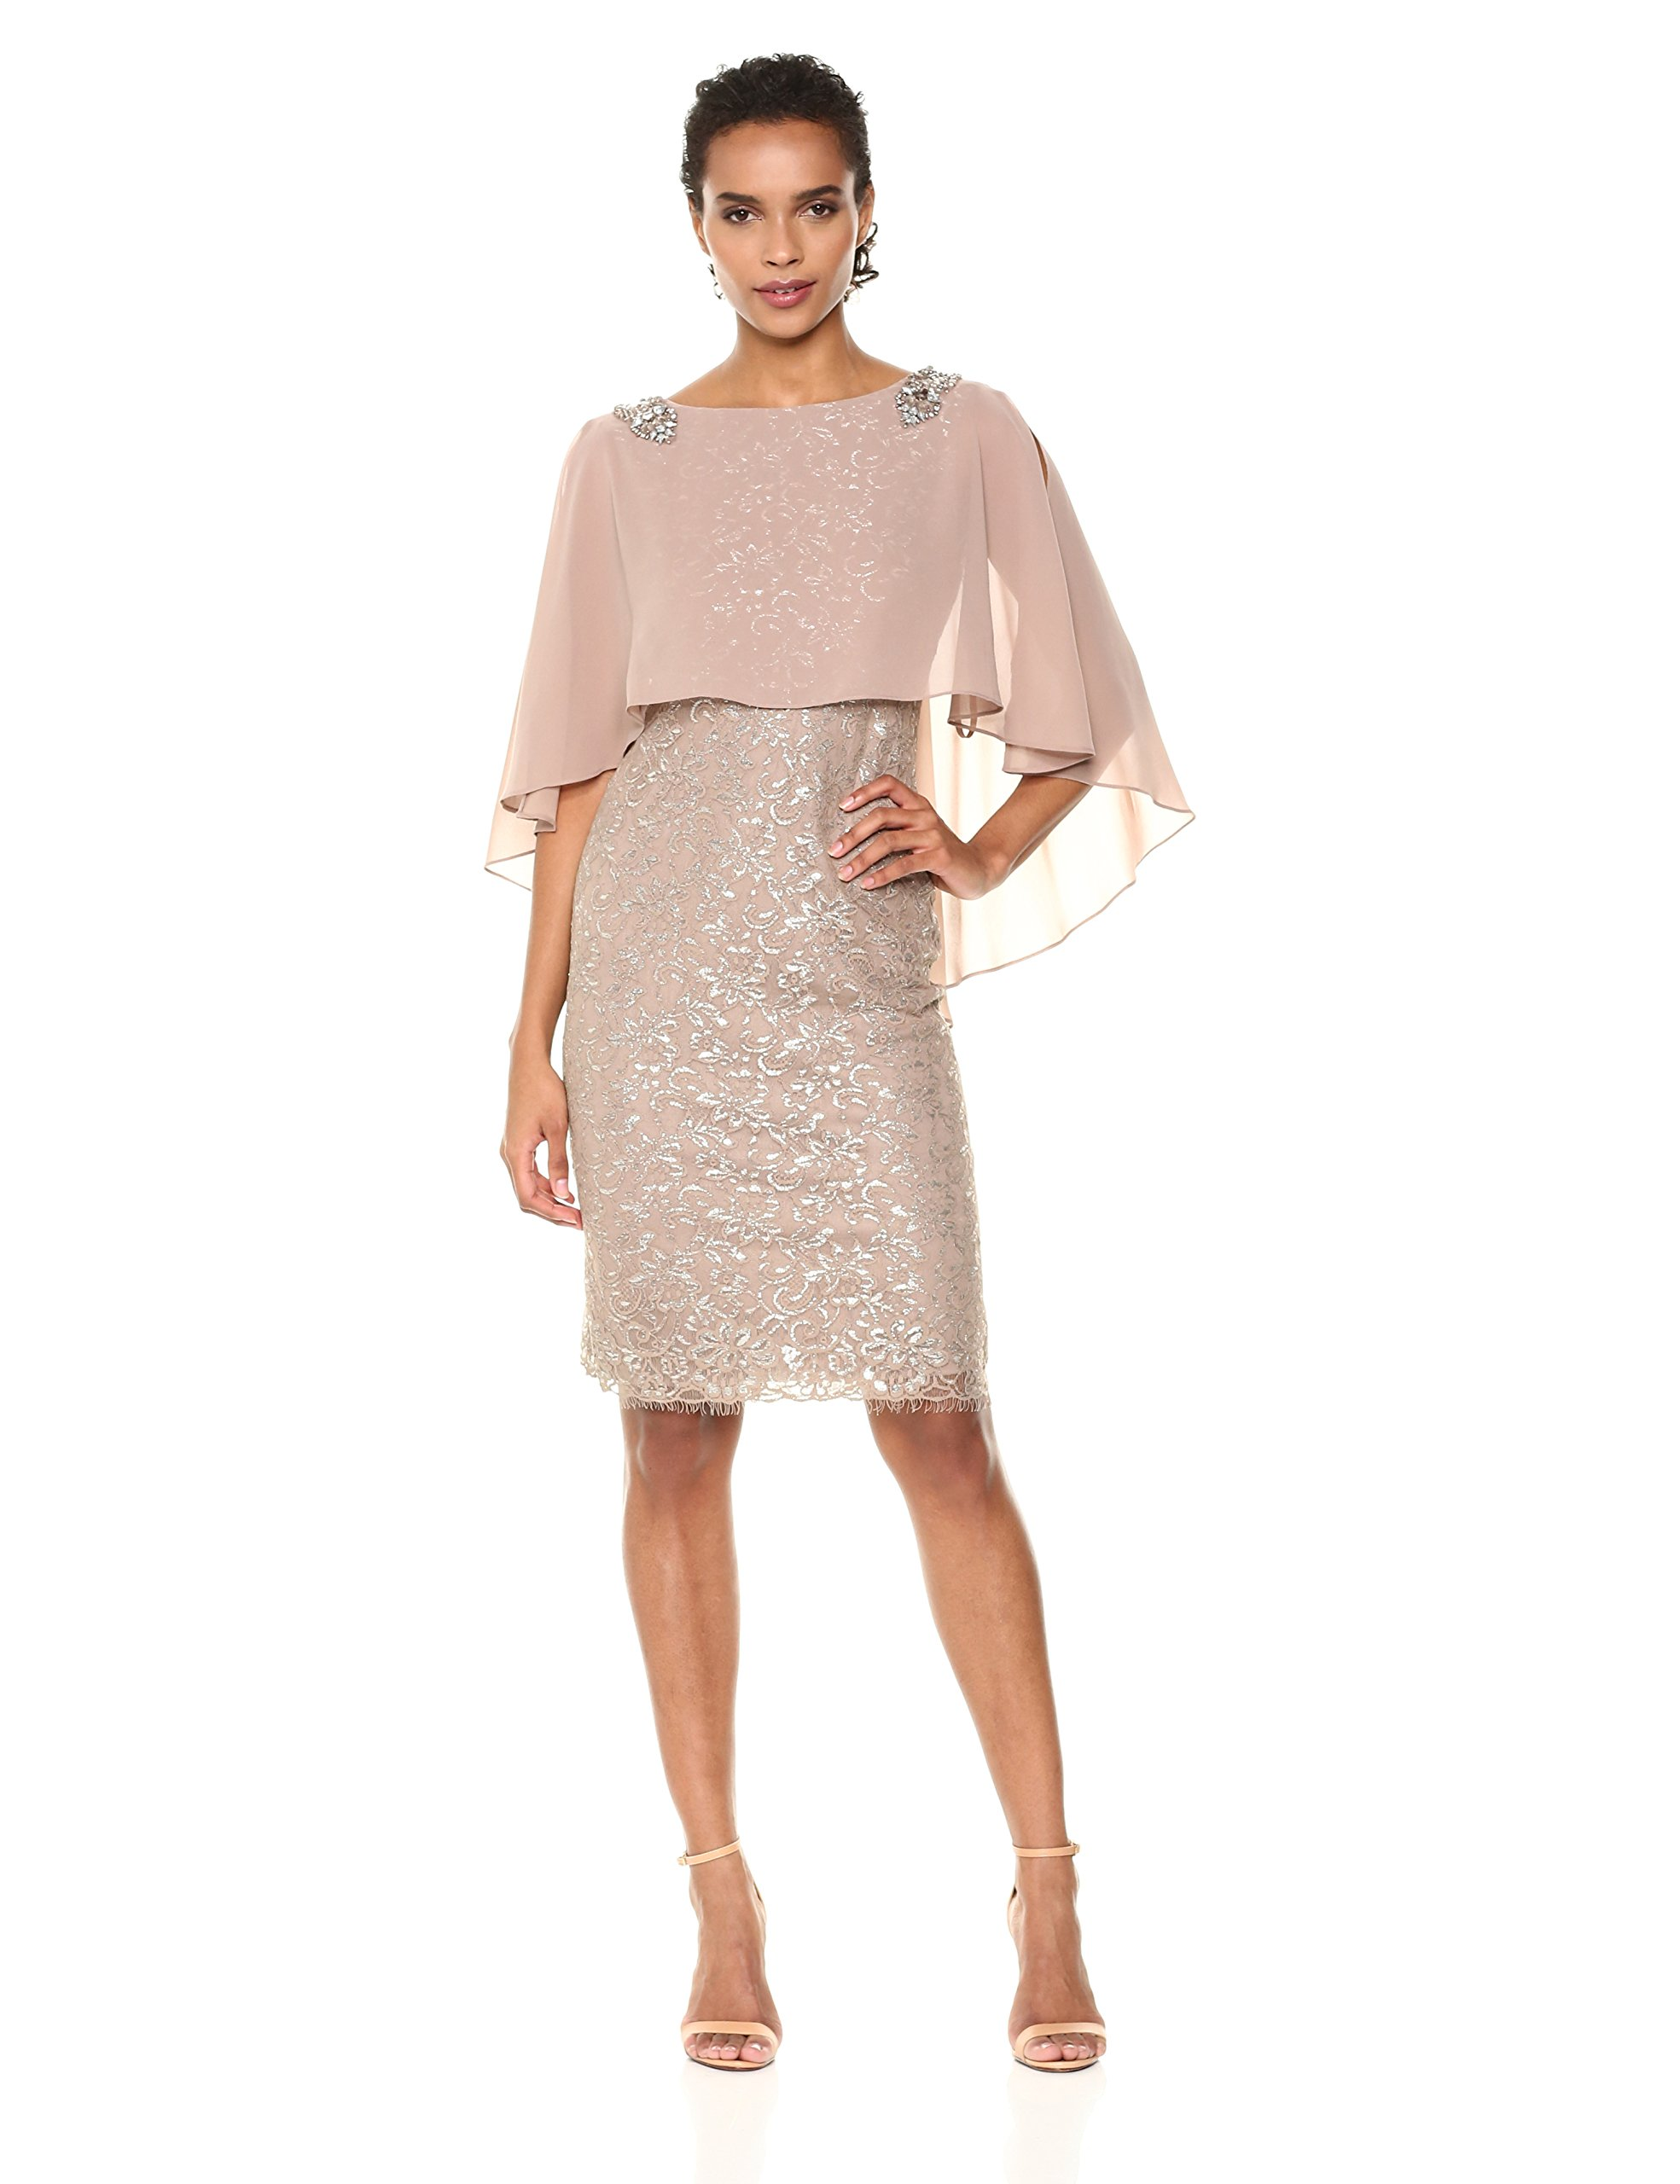 d60a7e1ca1a4 Emma Street Mother of the bride dress - wedding party or social occasion